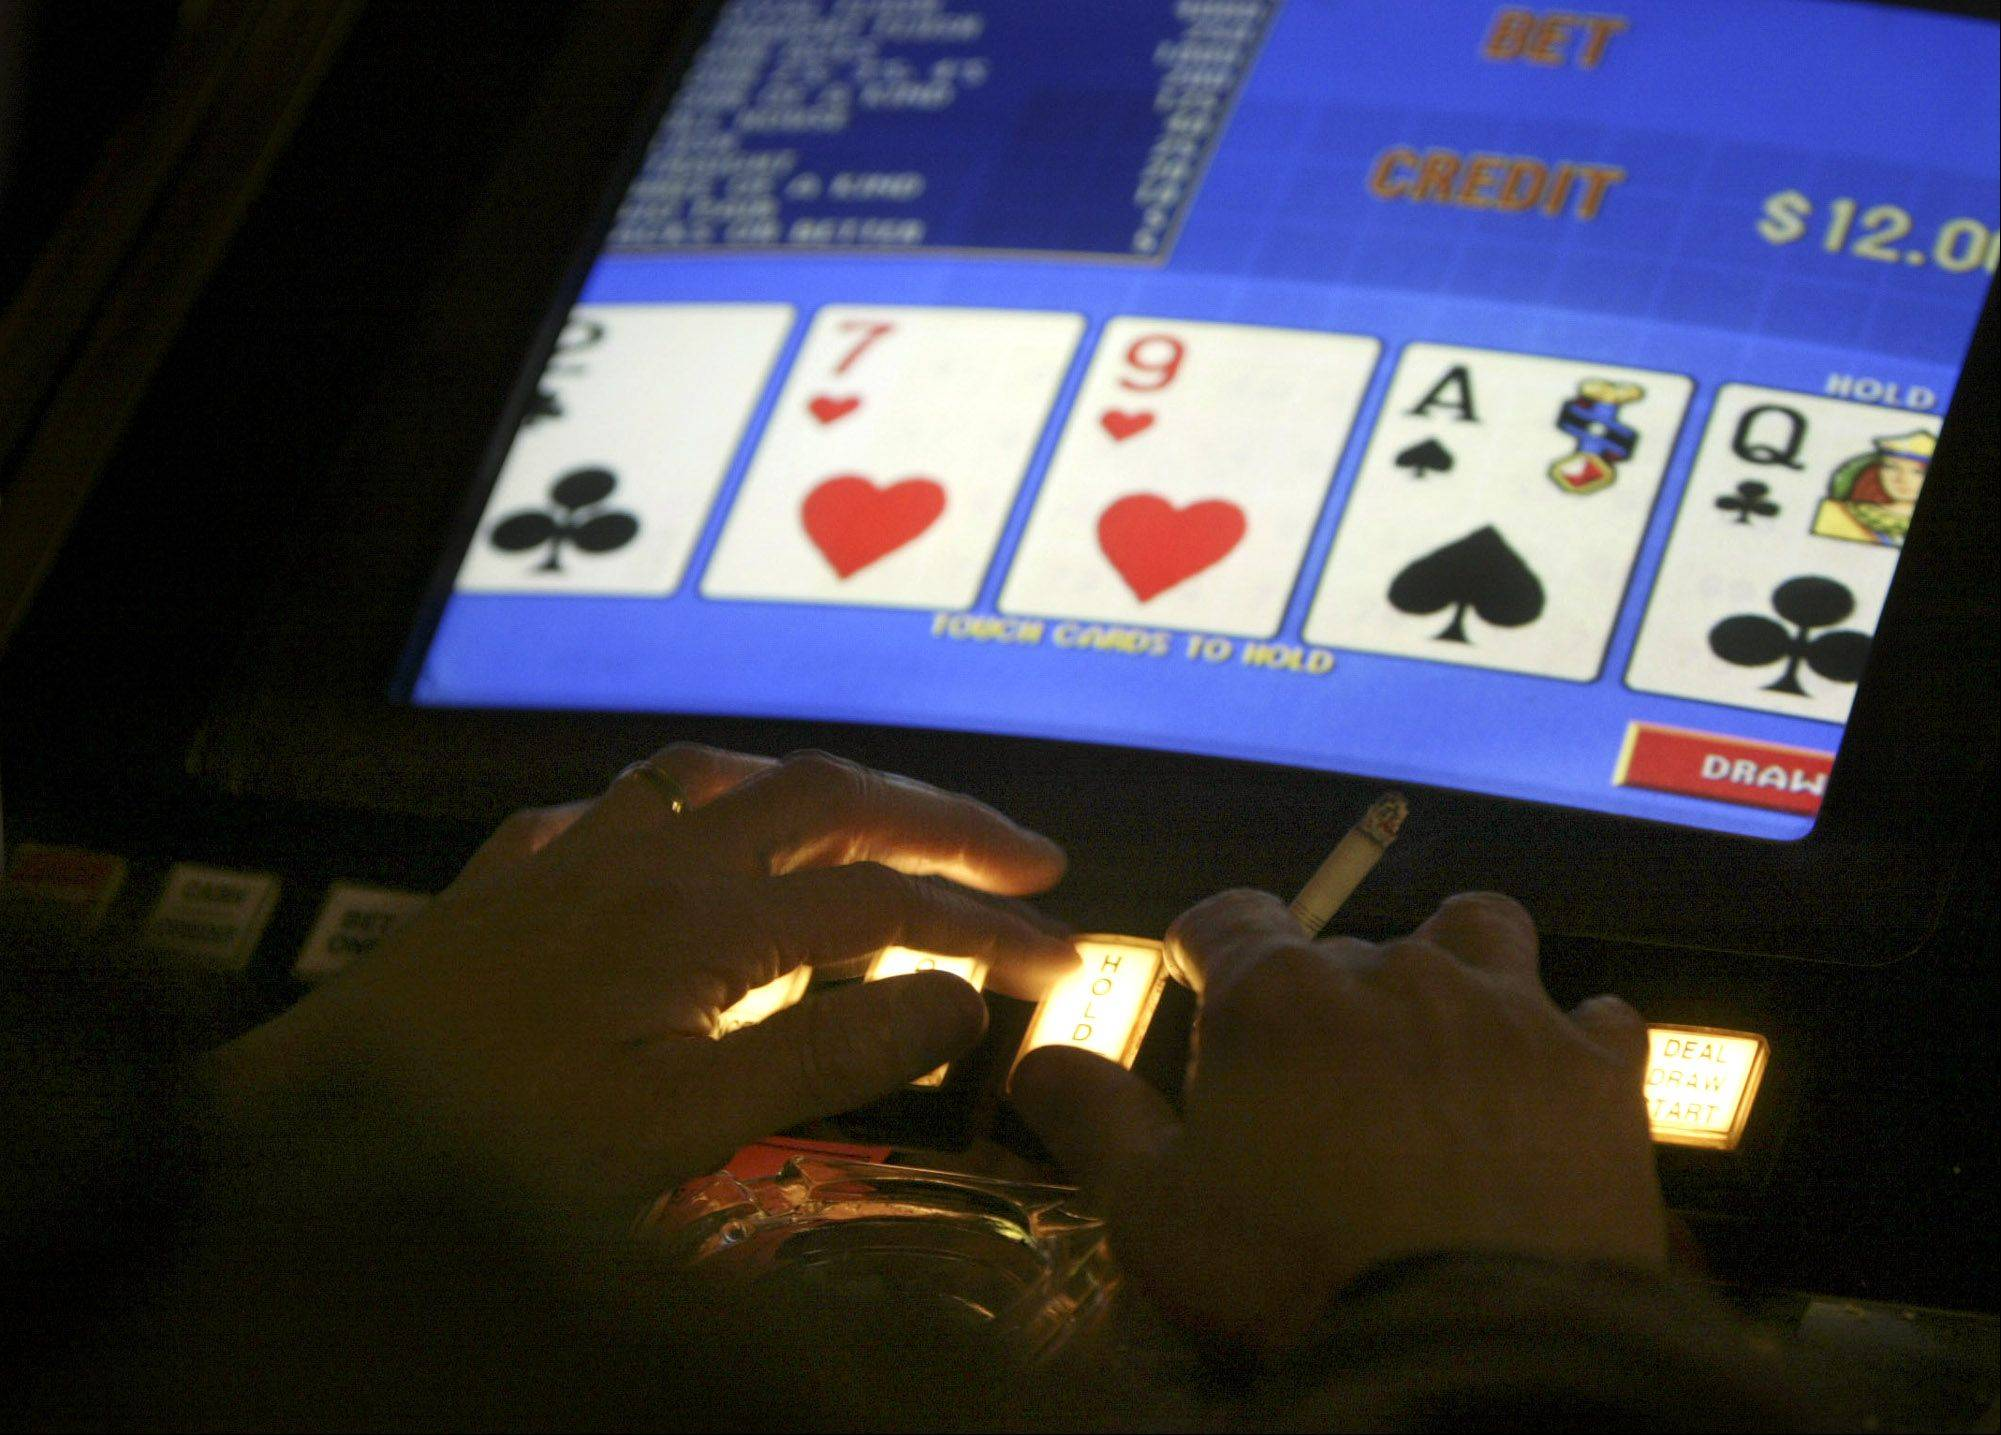 Video gambling at Elk Grove golf course edges closer